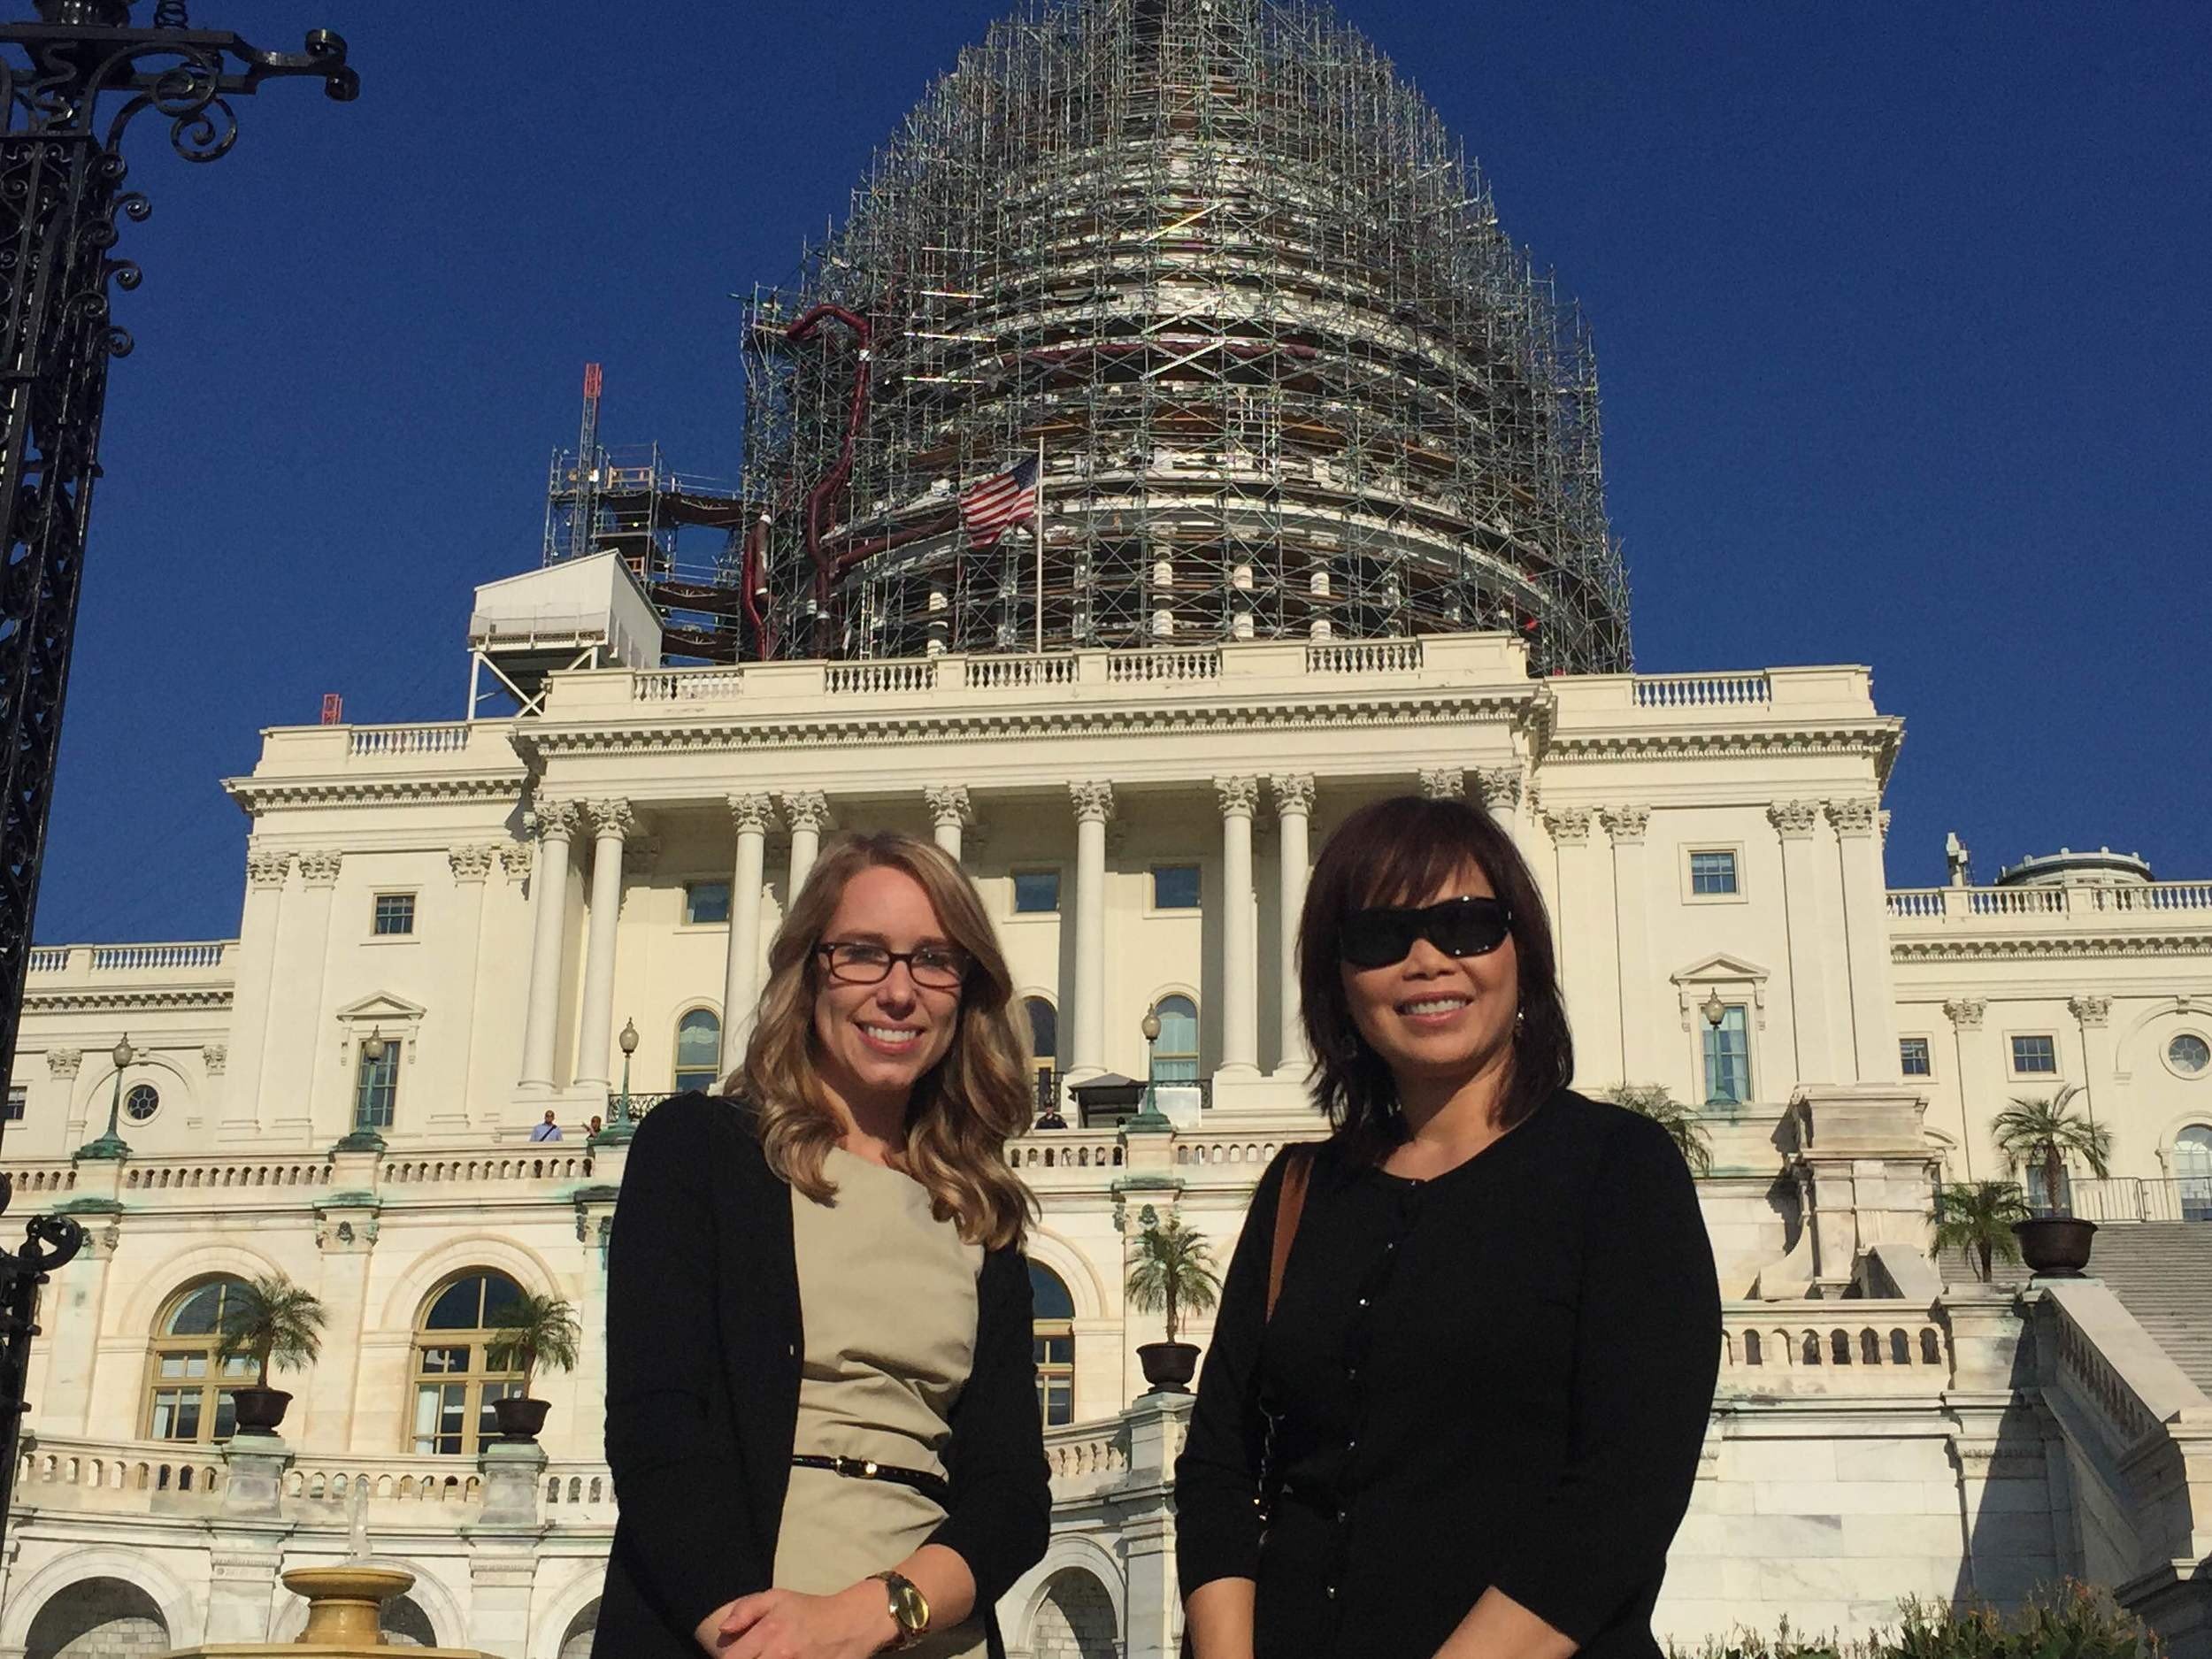 Graduate student Ashely Knapp from University of Arkansas and Dr. Maria Wong a professor at Idaho State University outside the U.S. Capitol building